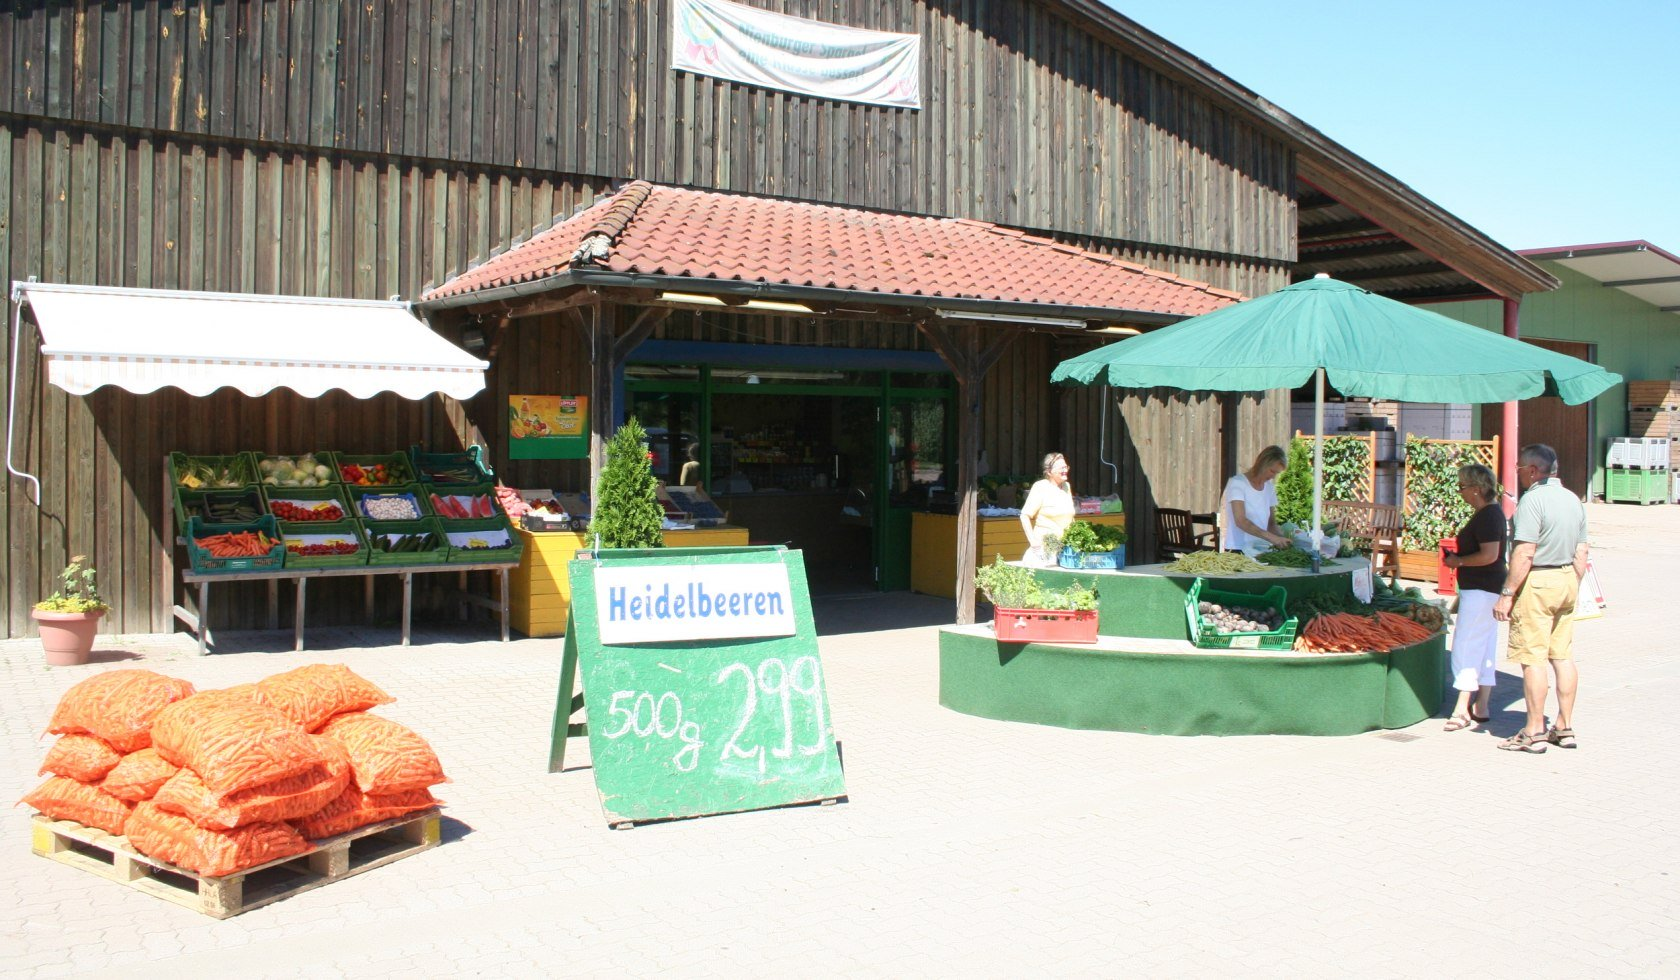 Farm shop with blueberry sales in the Mittelweser region